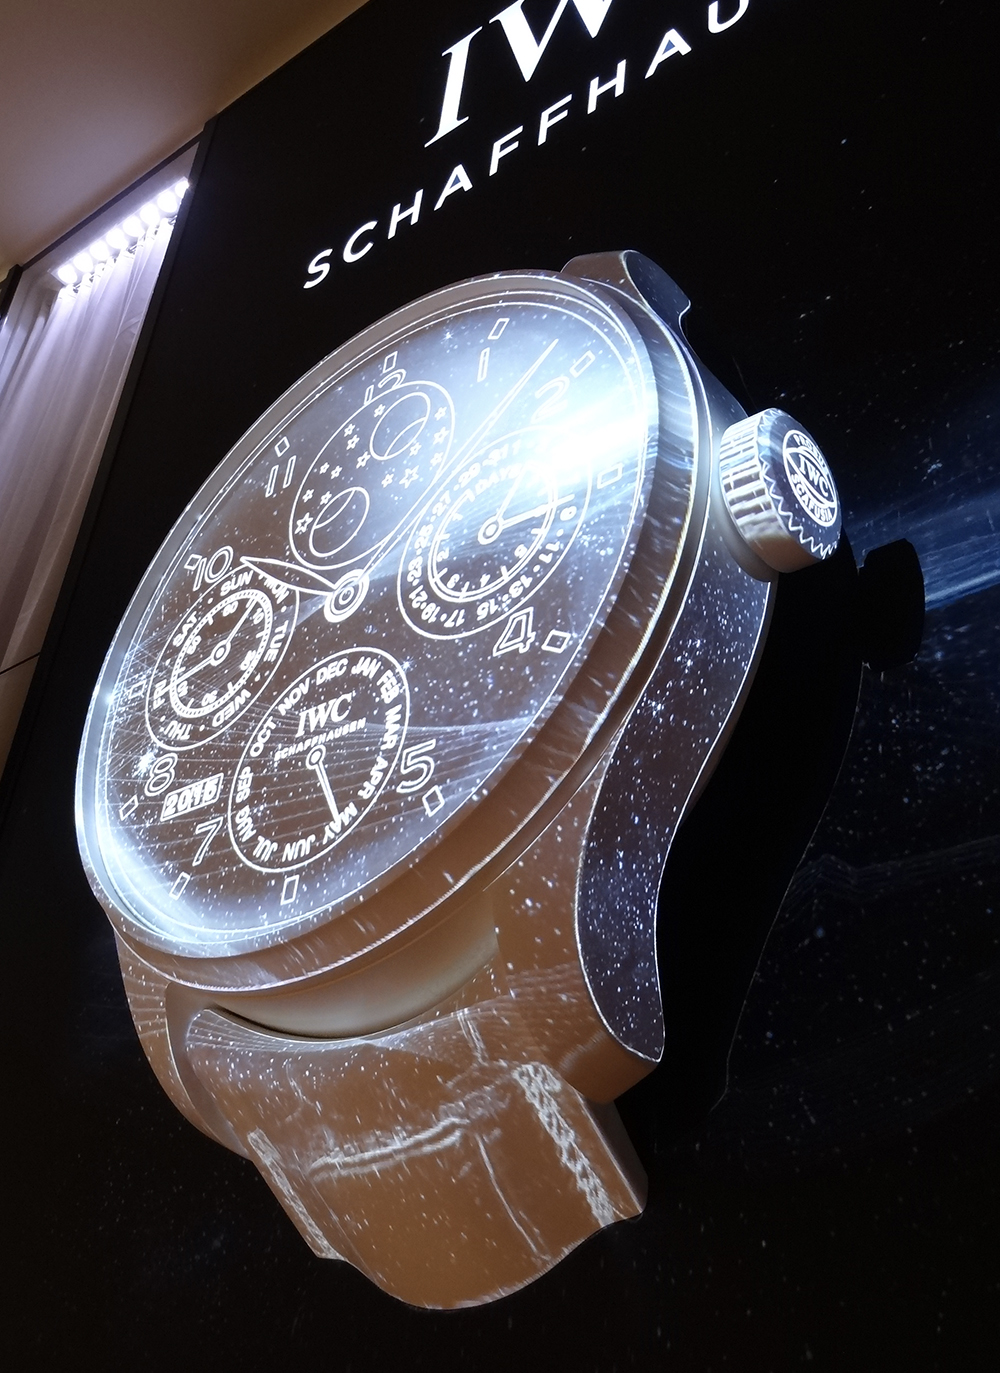 IWC presents the world's biggest three-dimensional watch at the SIHH 2015.